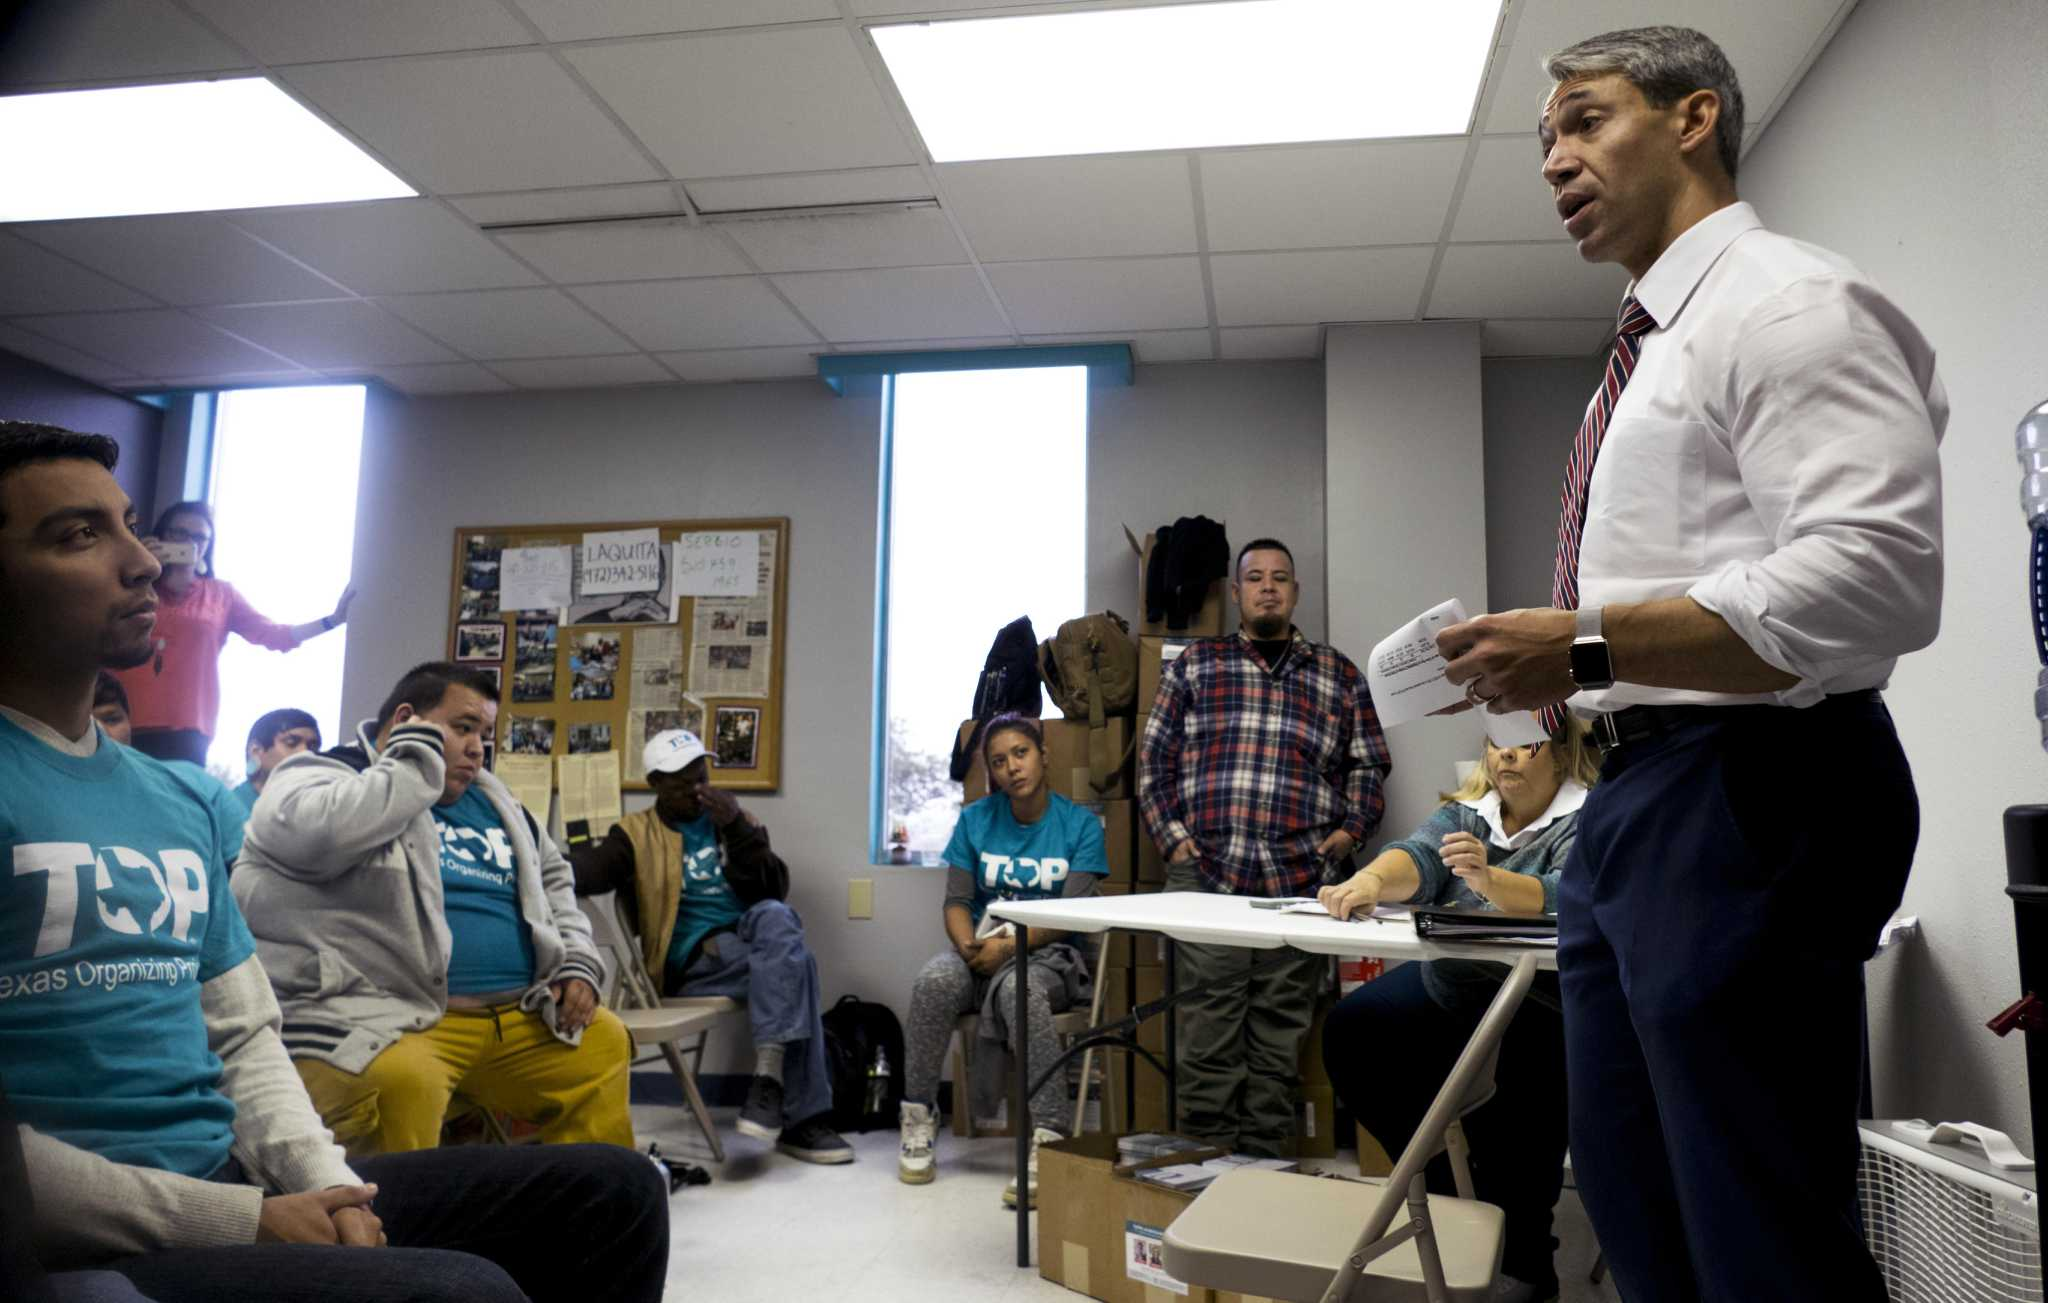 TOP jumps into San Antonio's mayoral race, giving Nirenberg a boost in final weeks